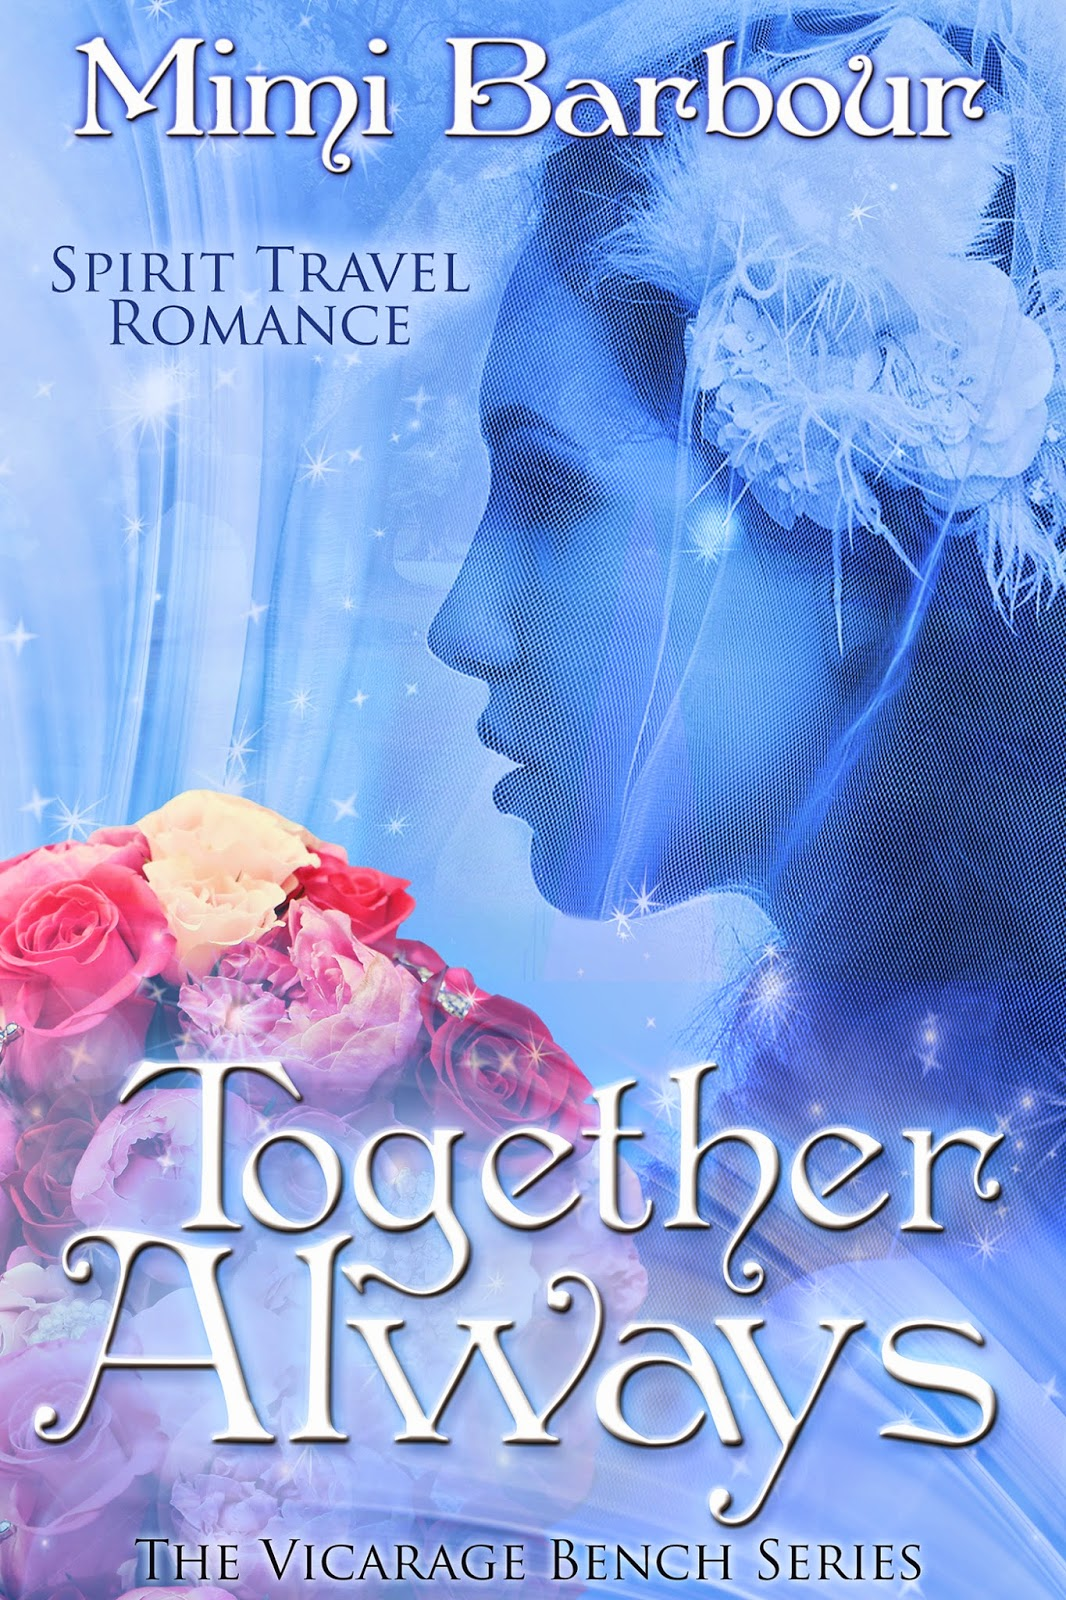 http://www.amazon.com/Together-Always-Spirit-Romance-Vicarage-ebook/dp/B00K9XYACC/ref=sr_1_1?ie=UTF8&qid=1407108096&sr=8-1&keywords=Together+Always